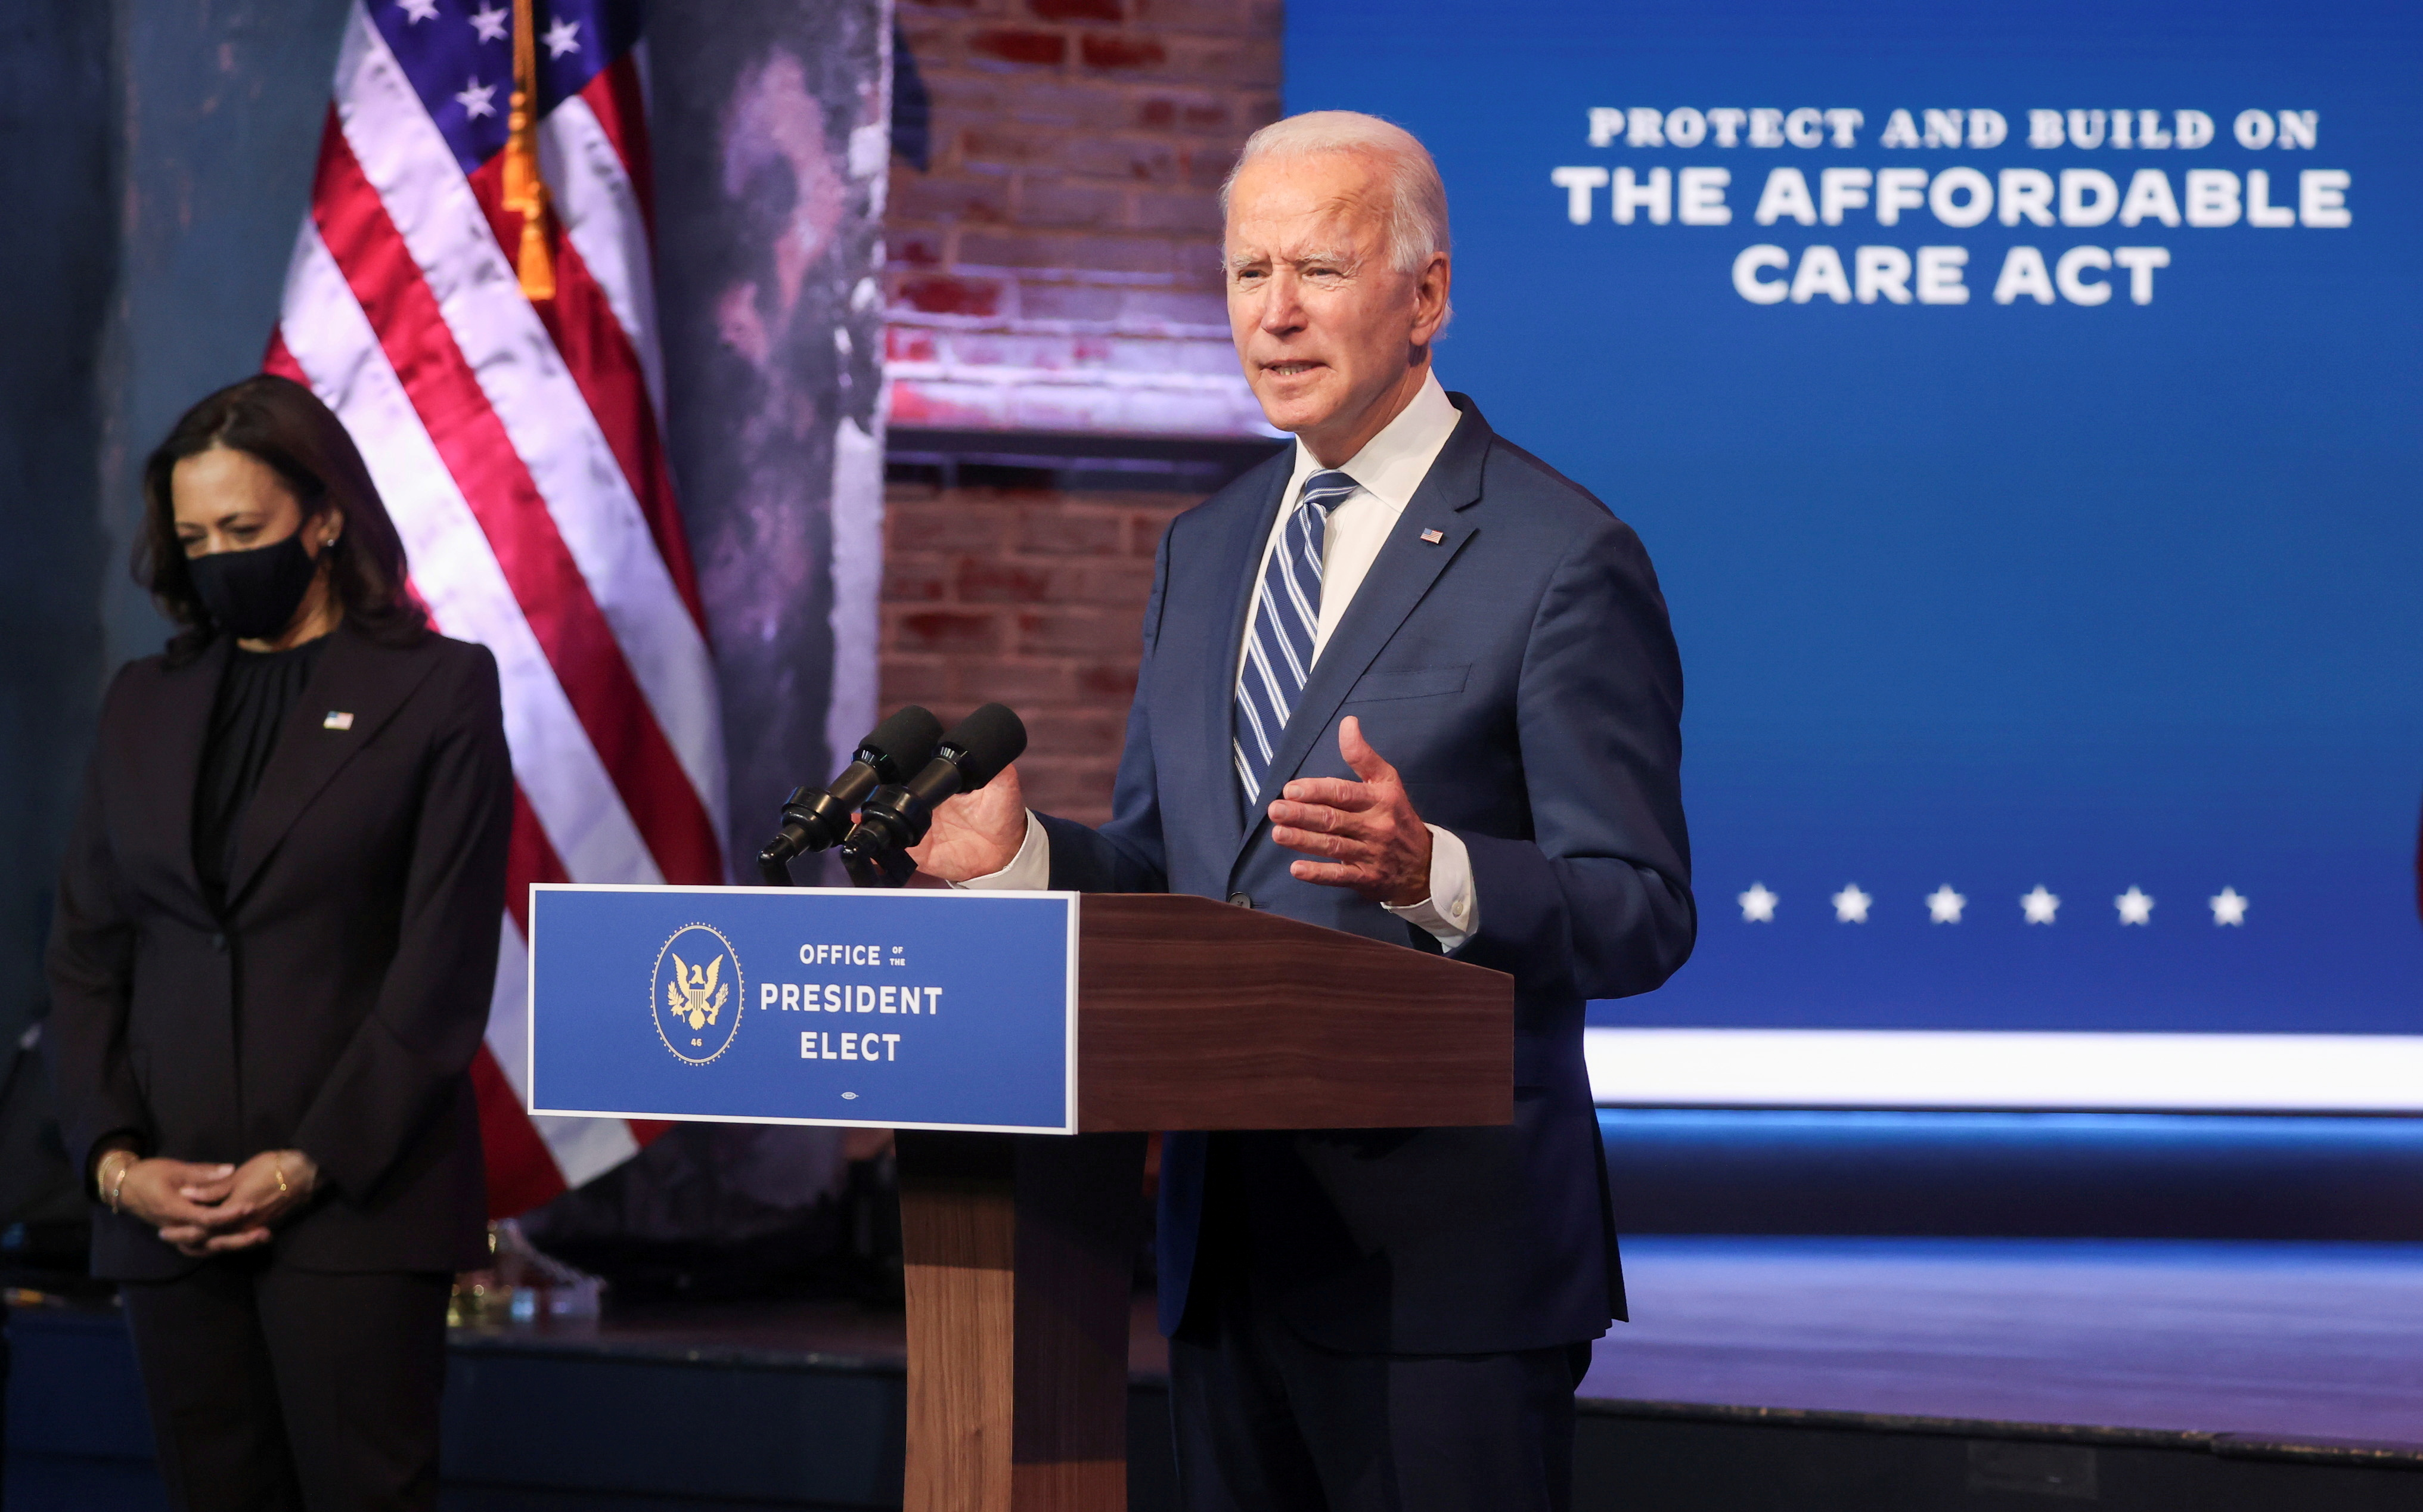 U.S. President-elect Joe Biden talks about protecting the Affordable Care Act (ACA) as he speaks to reporters with Vice President-elect Kamala Harris at this side about their